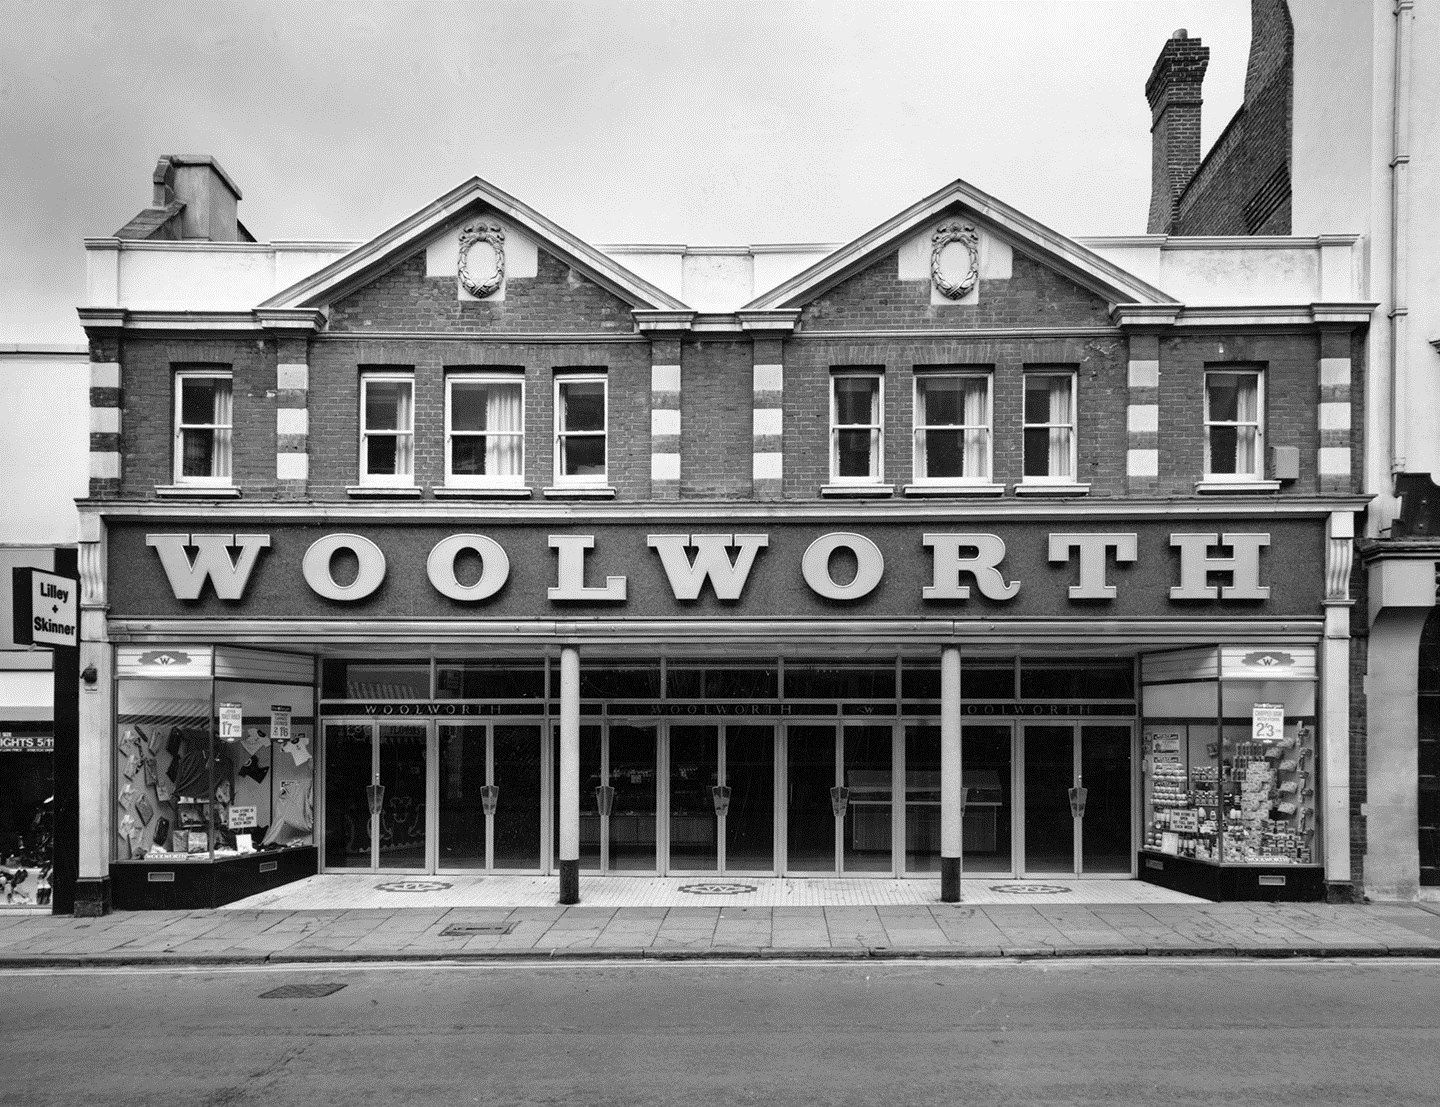 The Bromley store with a new shopfront in 1969. The lettering was ridiculously out of scale compared with the building.